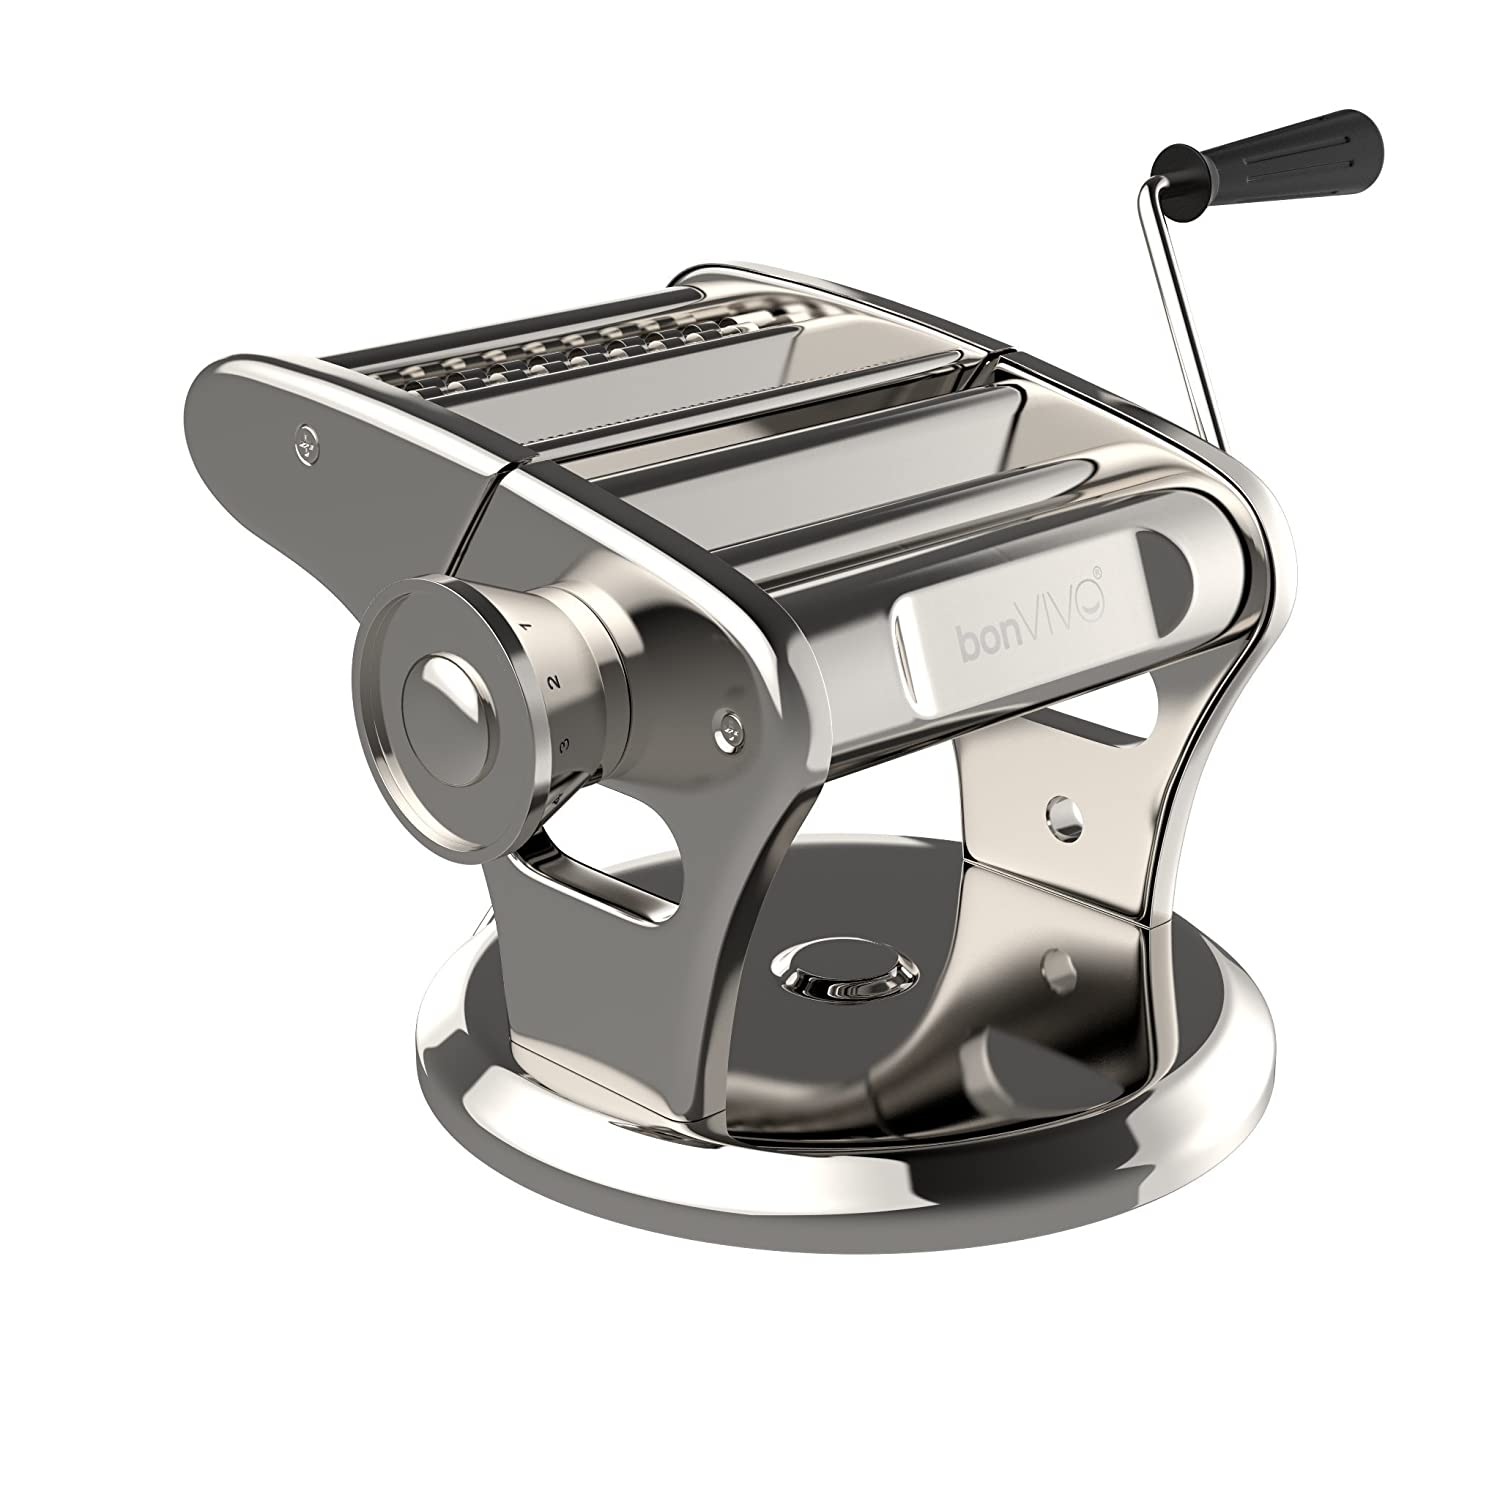 bonVIVO Pasta Mia Stainless Steel Pasta Machine With Chrome Finish And Innovative Suction Base, For The Pleasure Of Italian-Style Pasta From Your Own Kitchen Bonstato